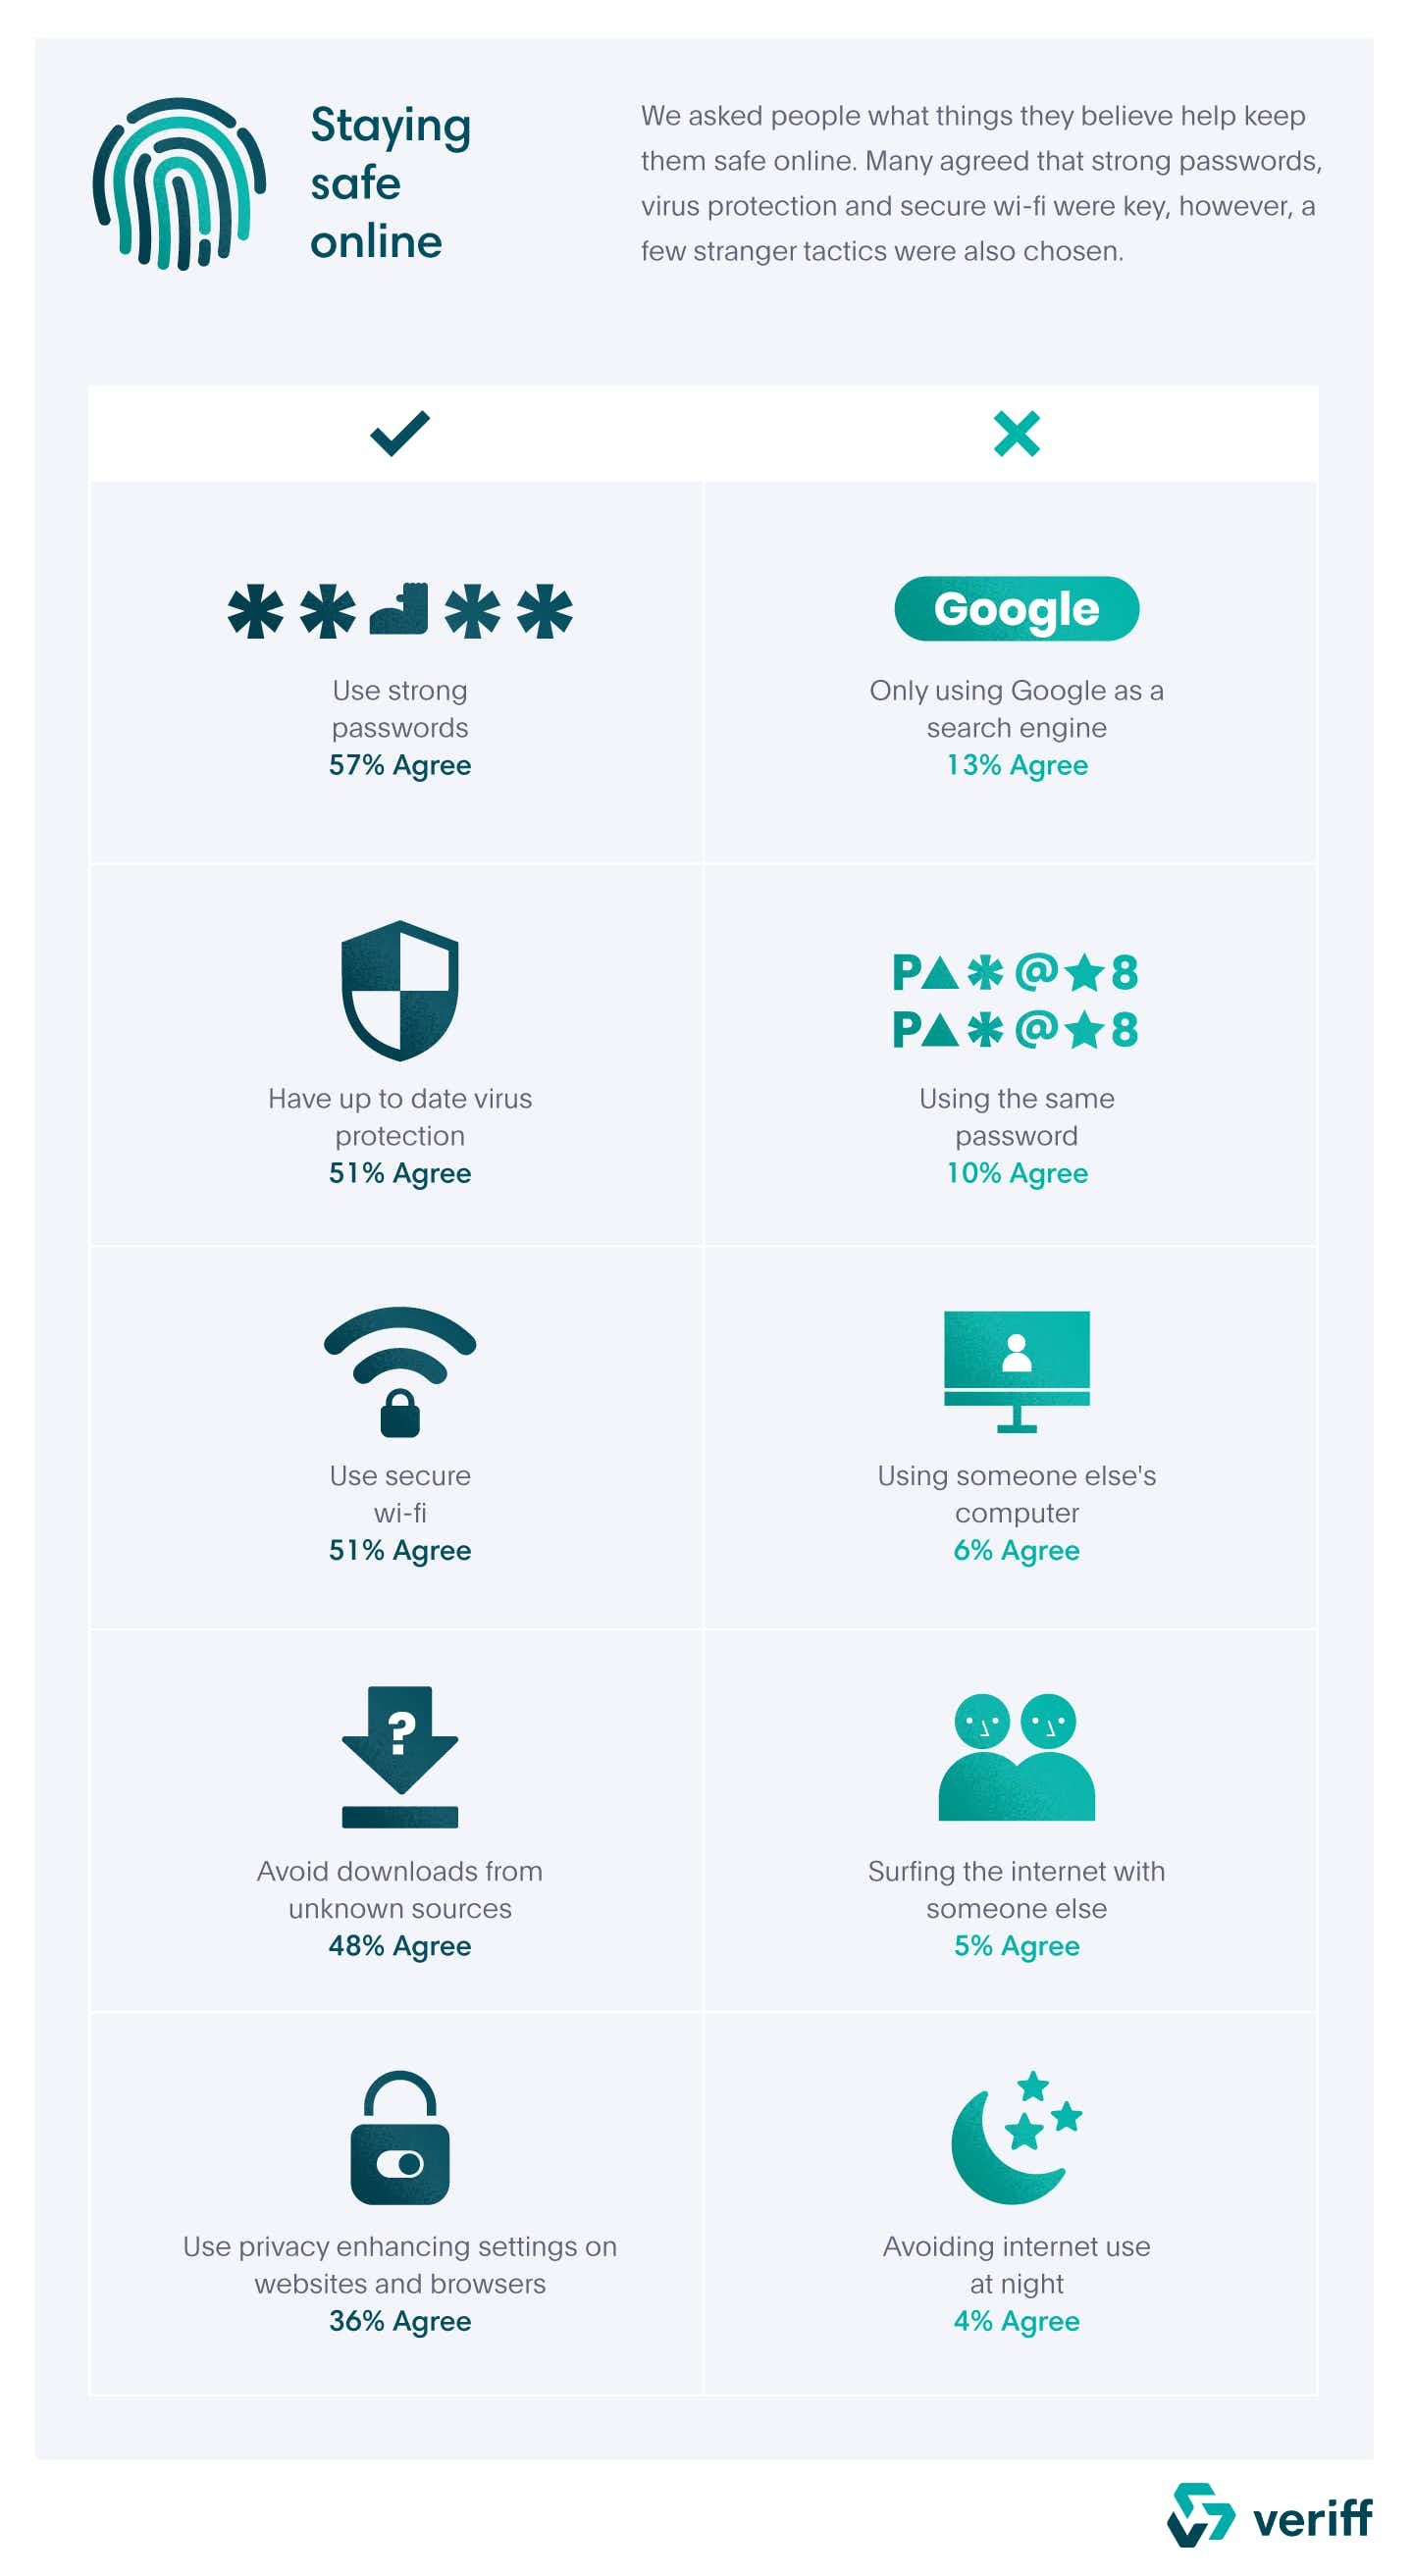 An infographic sharing advice for staying safe online.